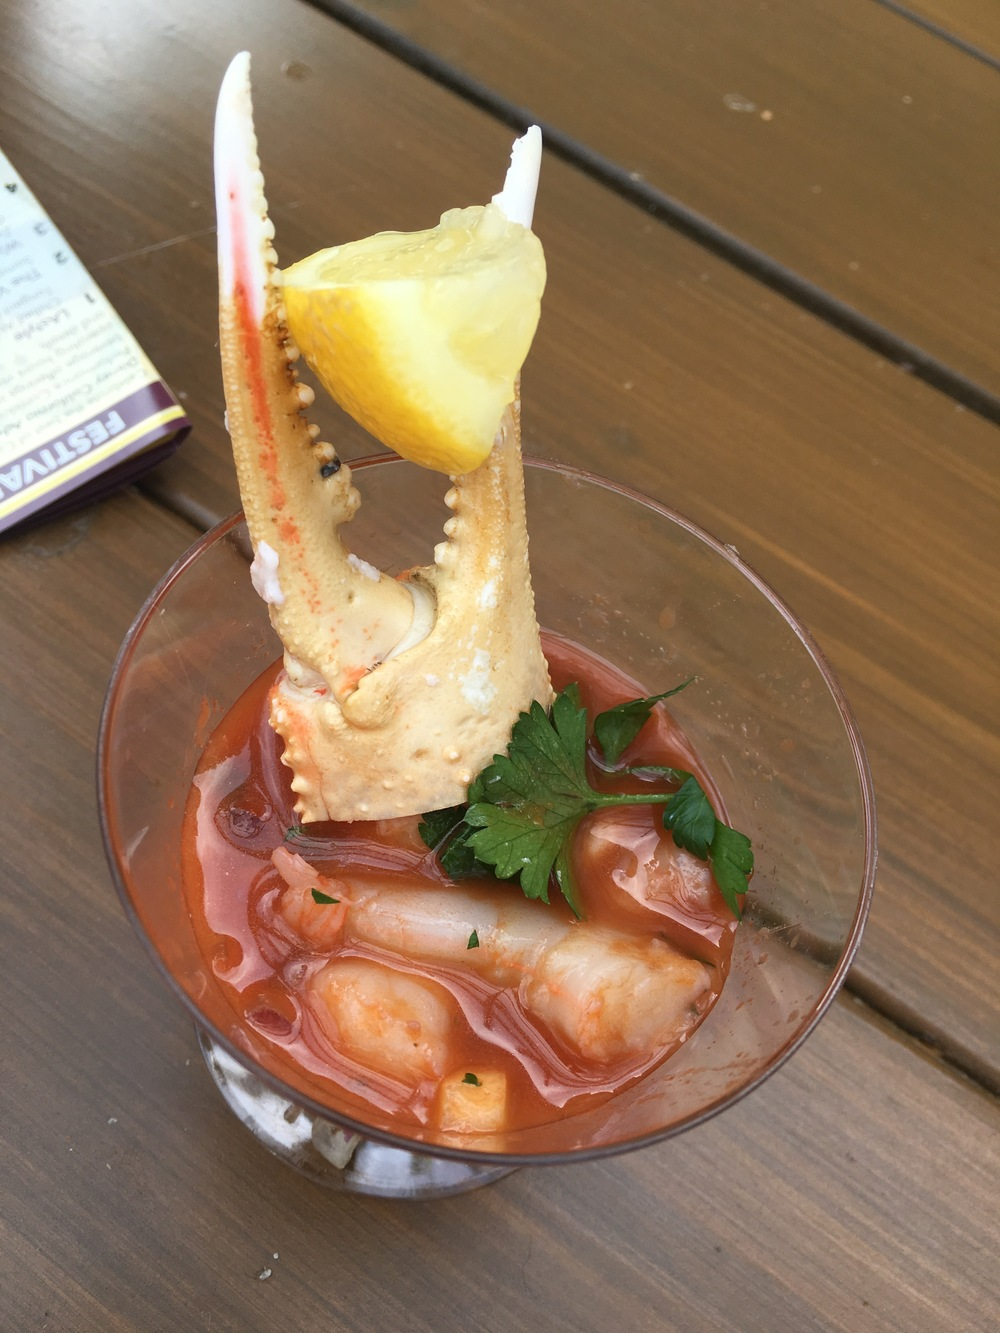 Chilled Shrimp with Snow Crab Cocktail